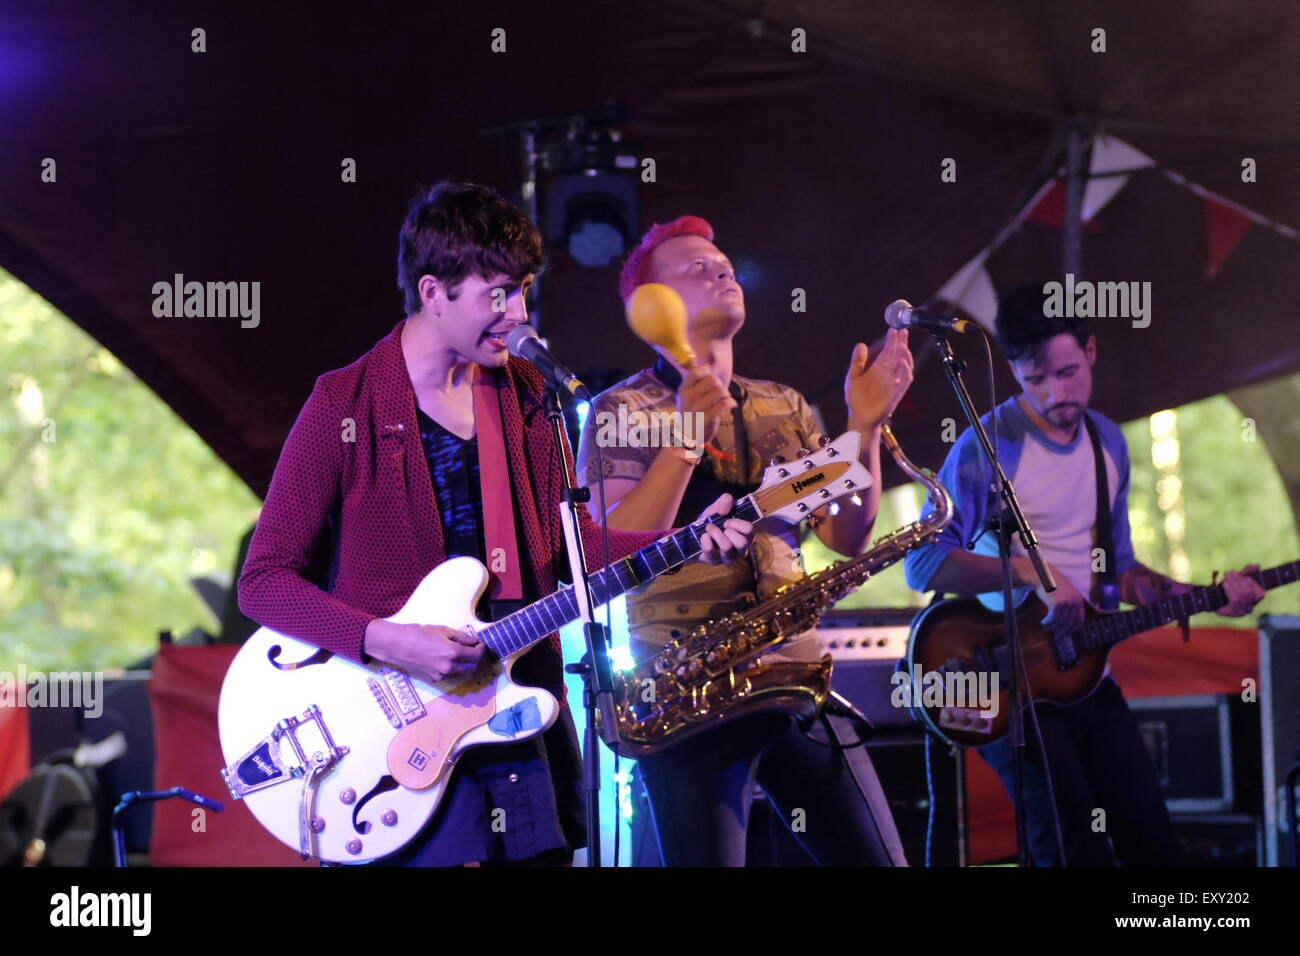 Henham Park, Southwold, Suffolk, UK. 17th July, 2015. Ezra Furman plays the Latitude Festival 2015 at the iArena - Stock Image